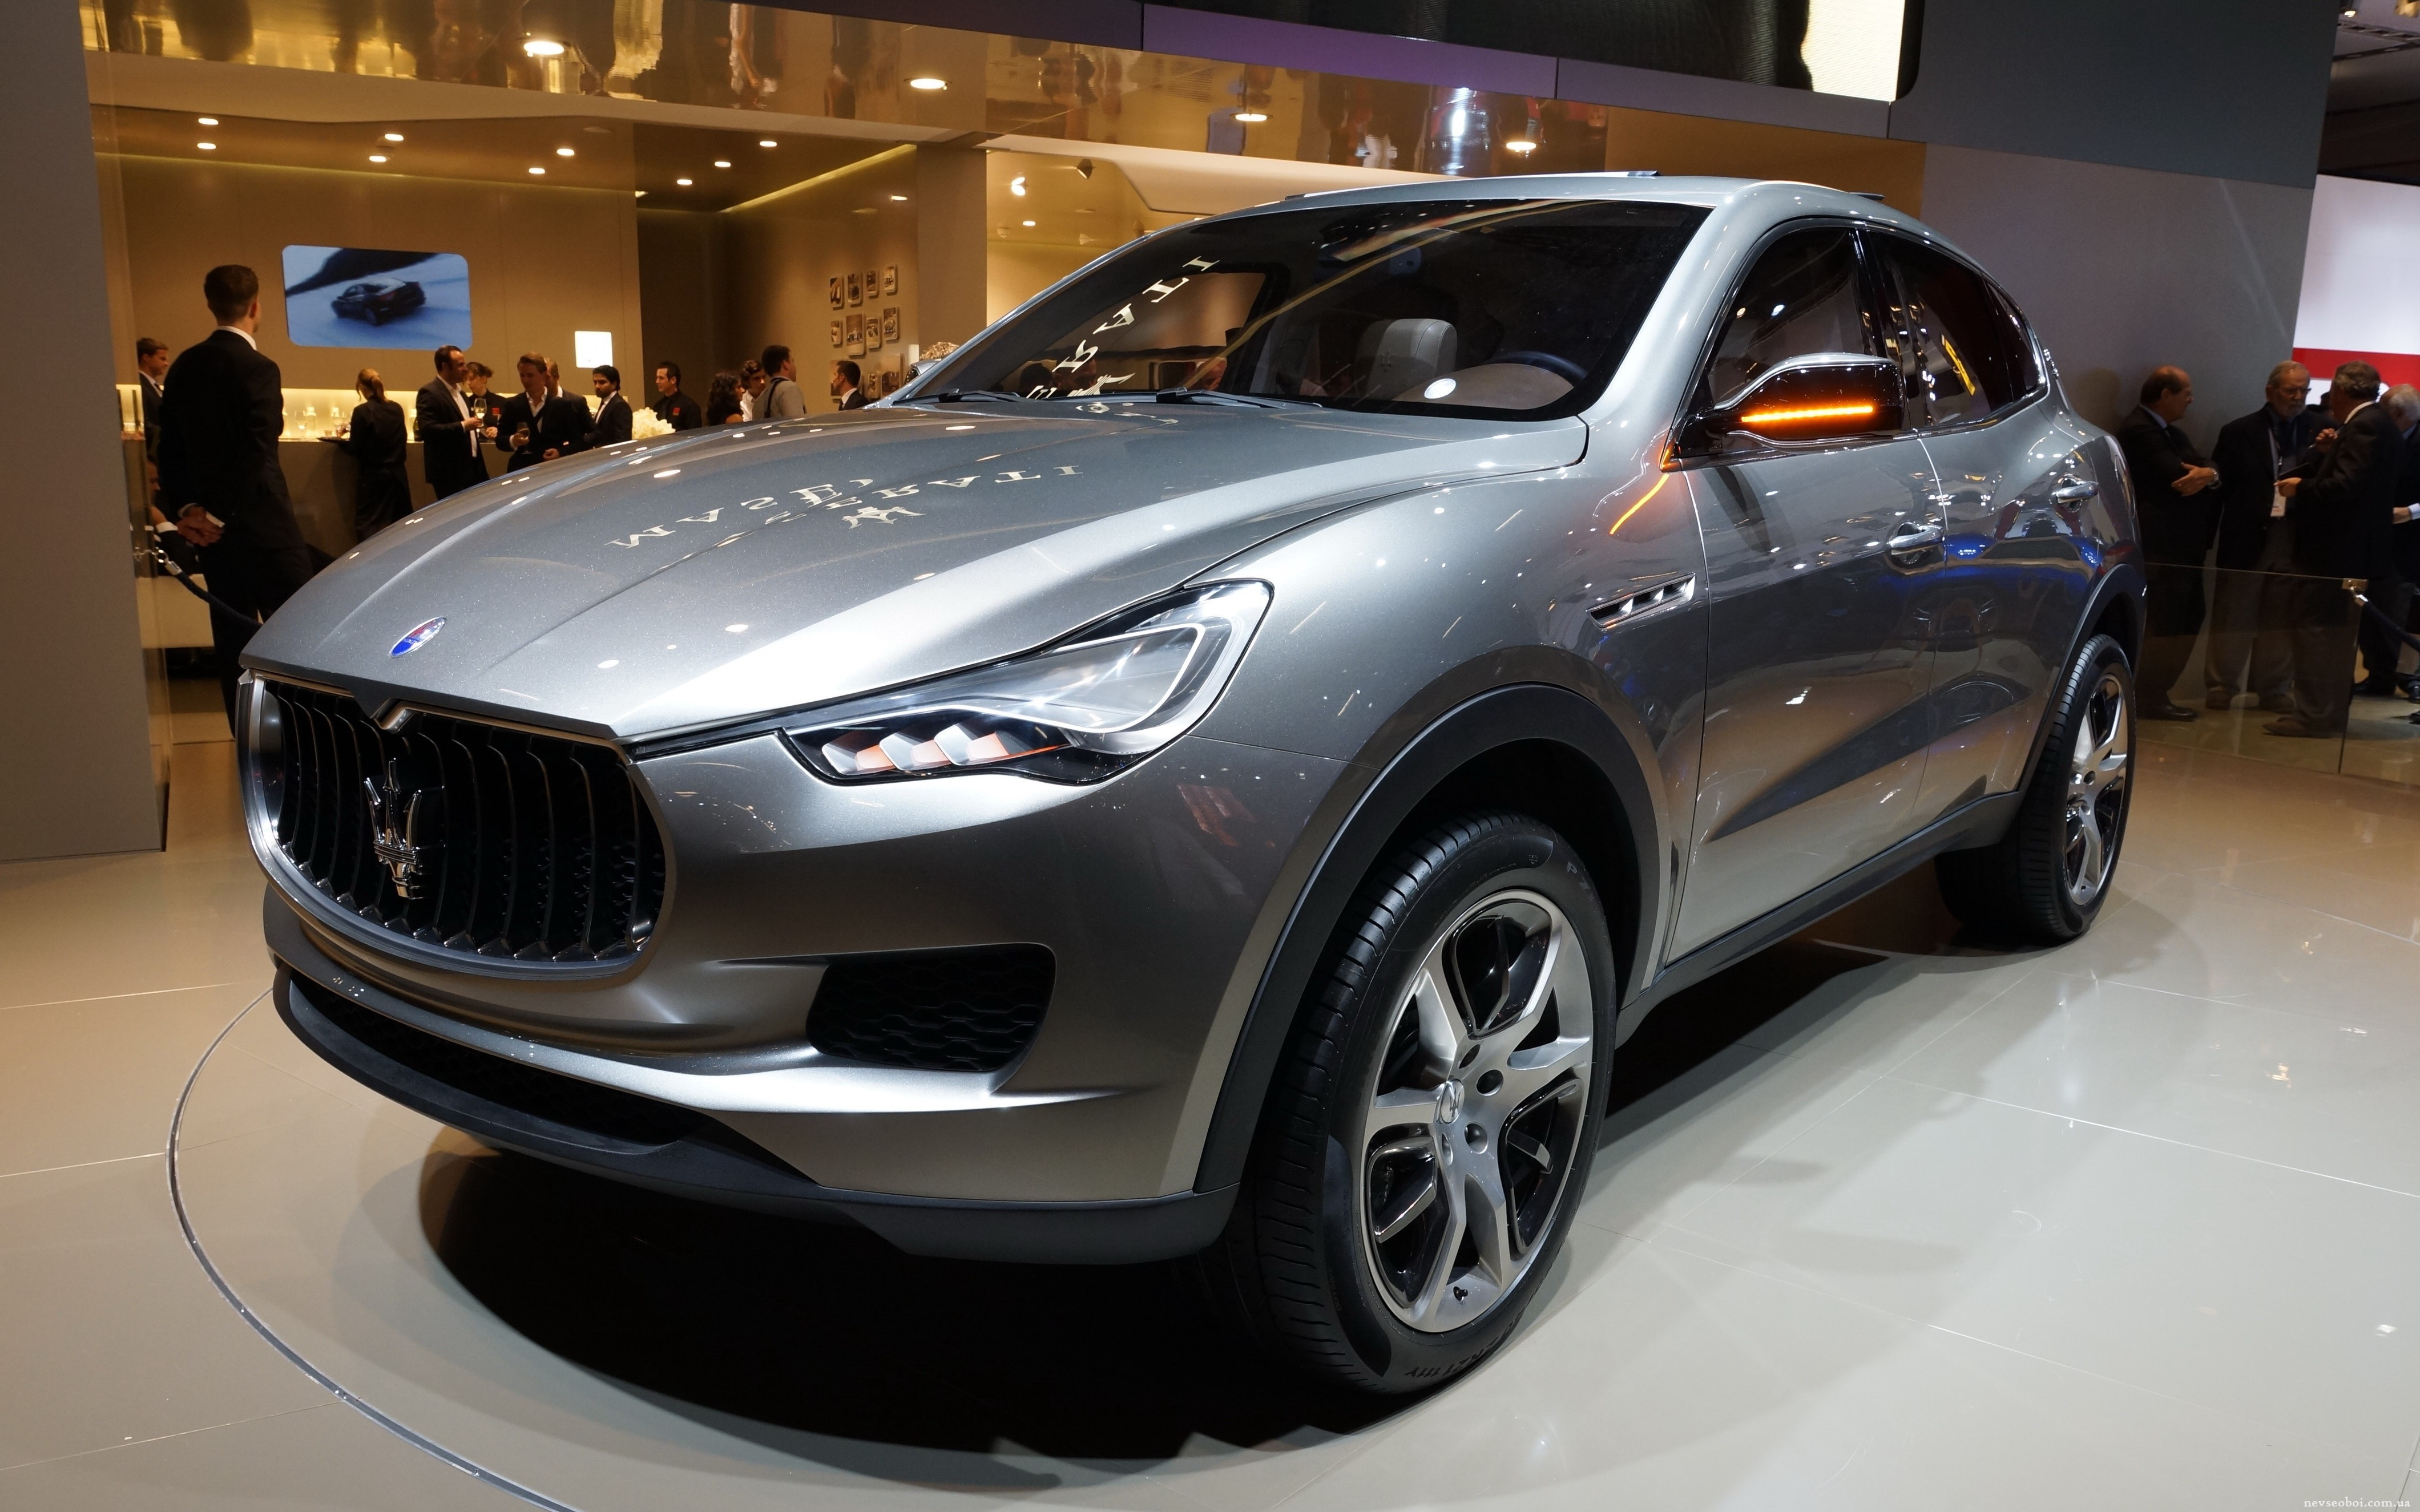 Maserati levante suv wallpapers images photos pictures backgrounds - Maserati levante wallpaper ...